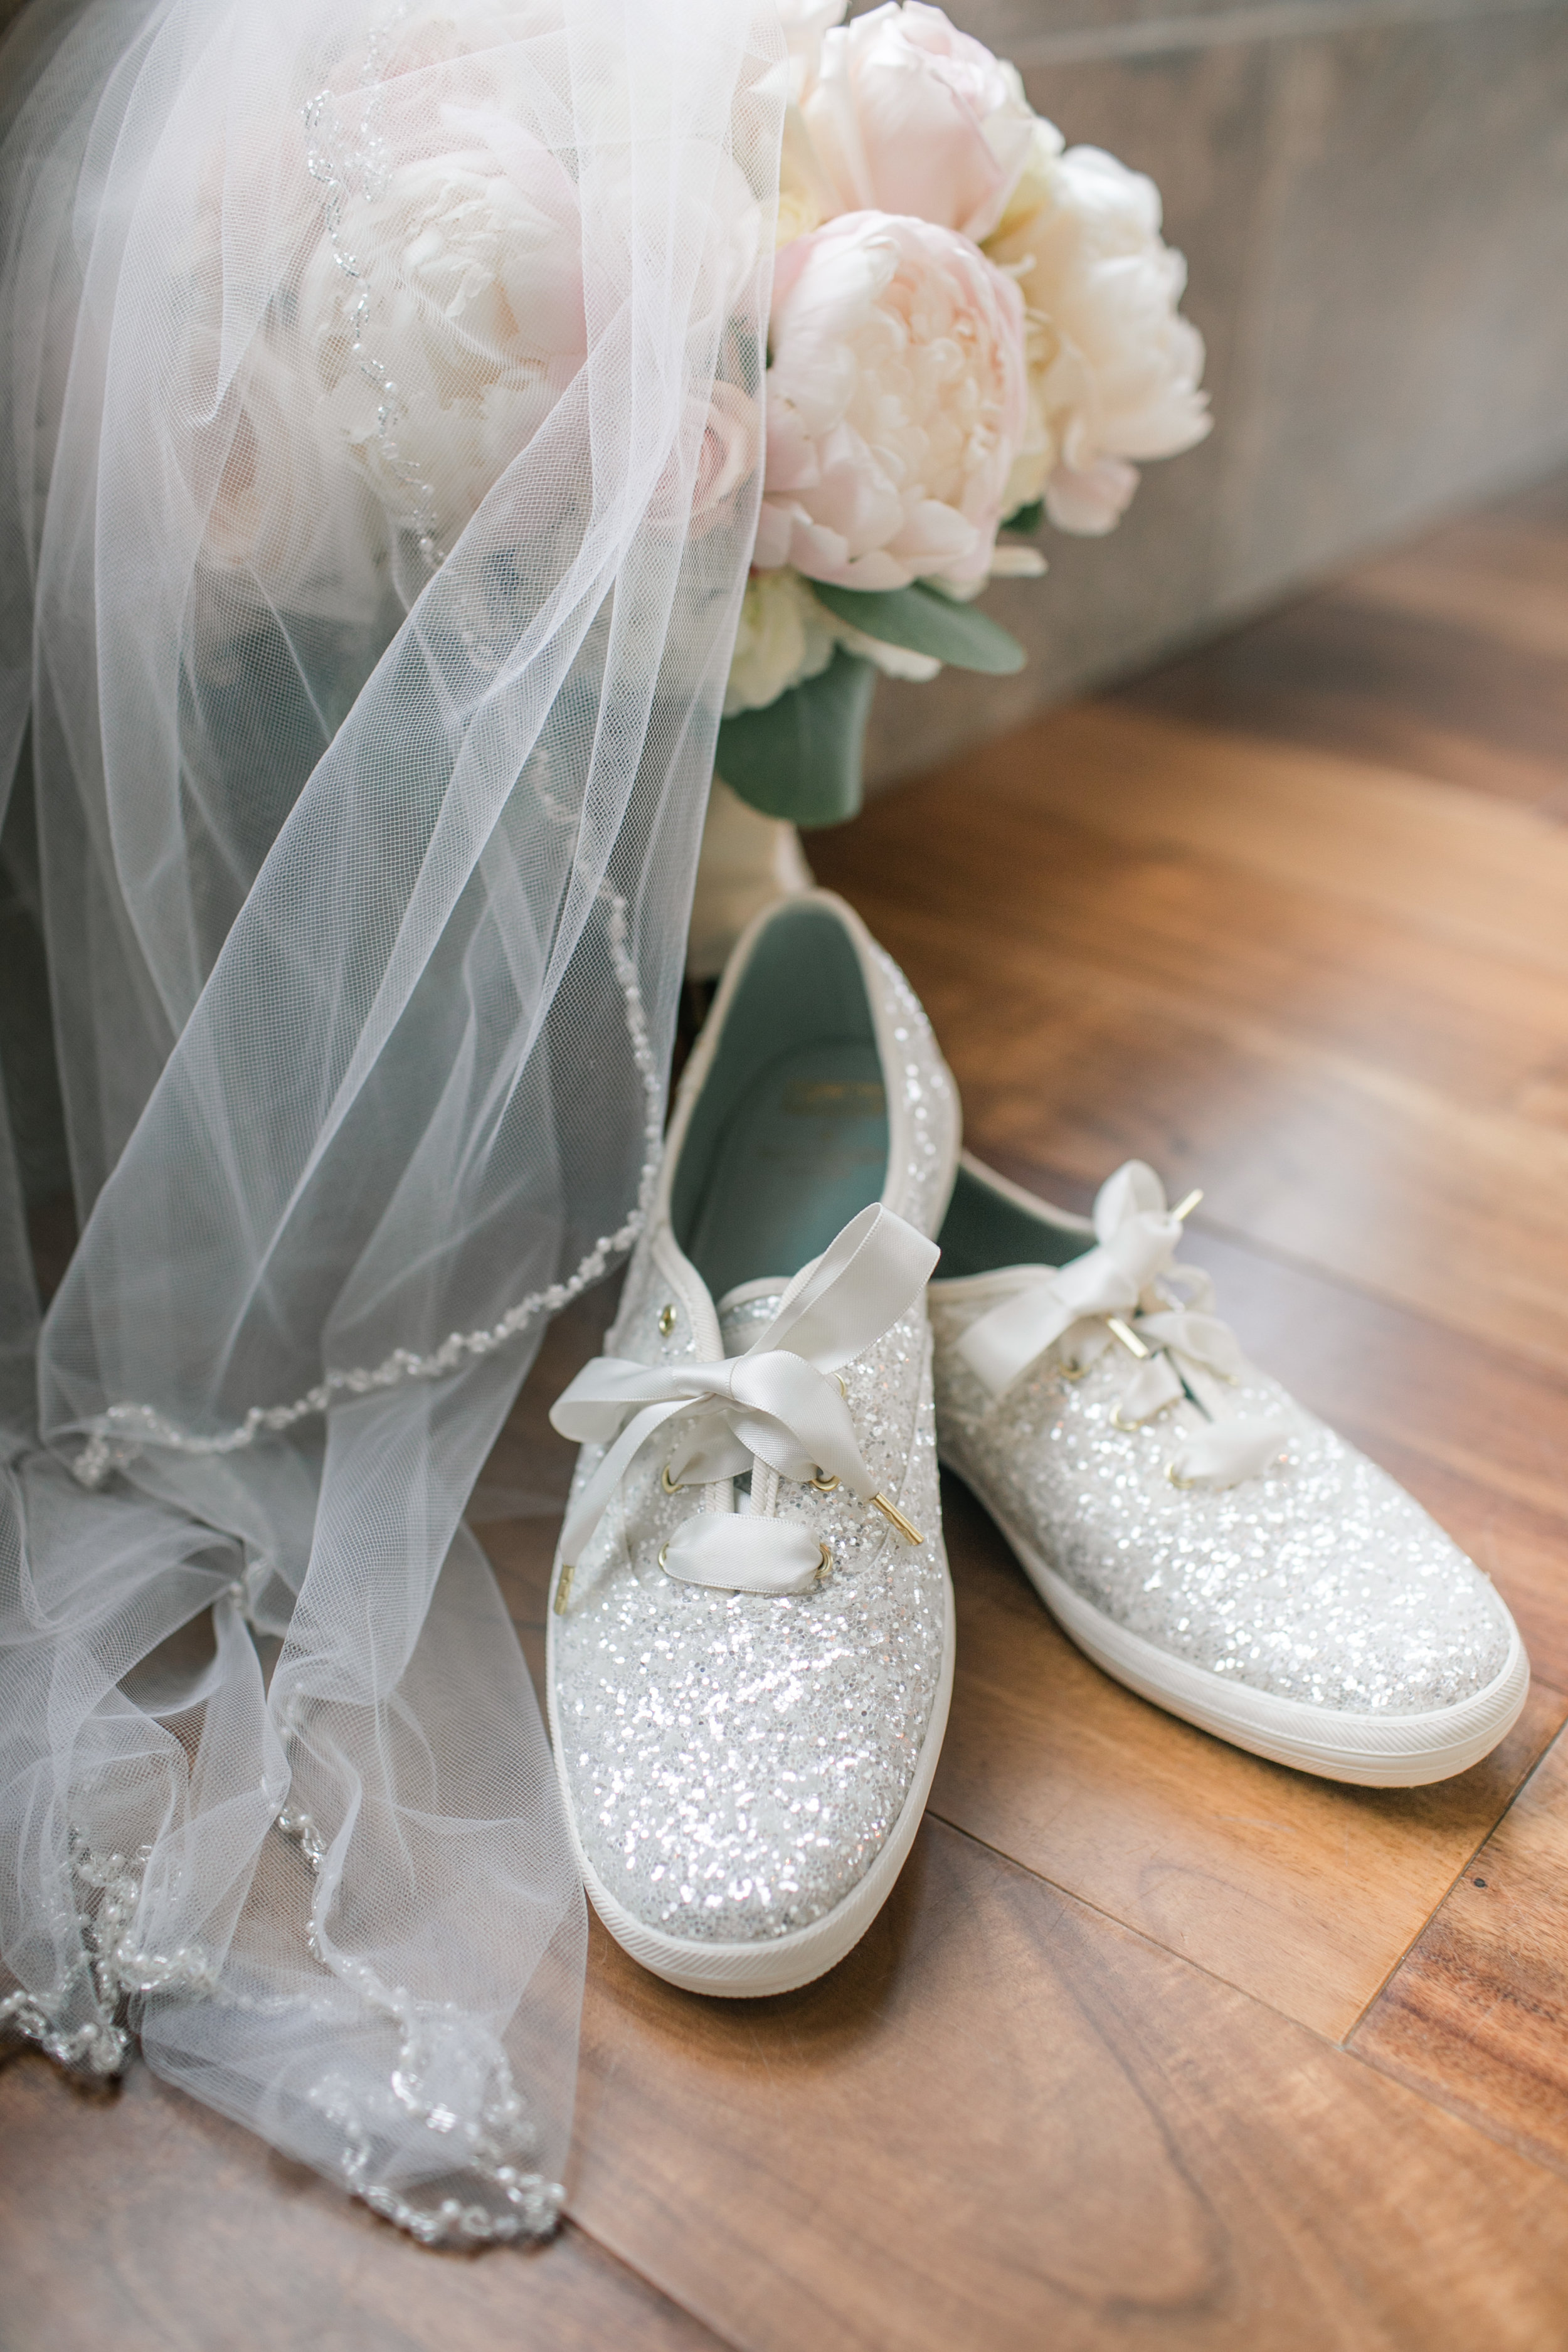 wedding details: flowers, glitter shoes, veil